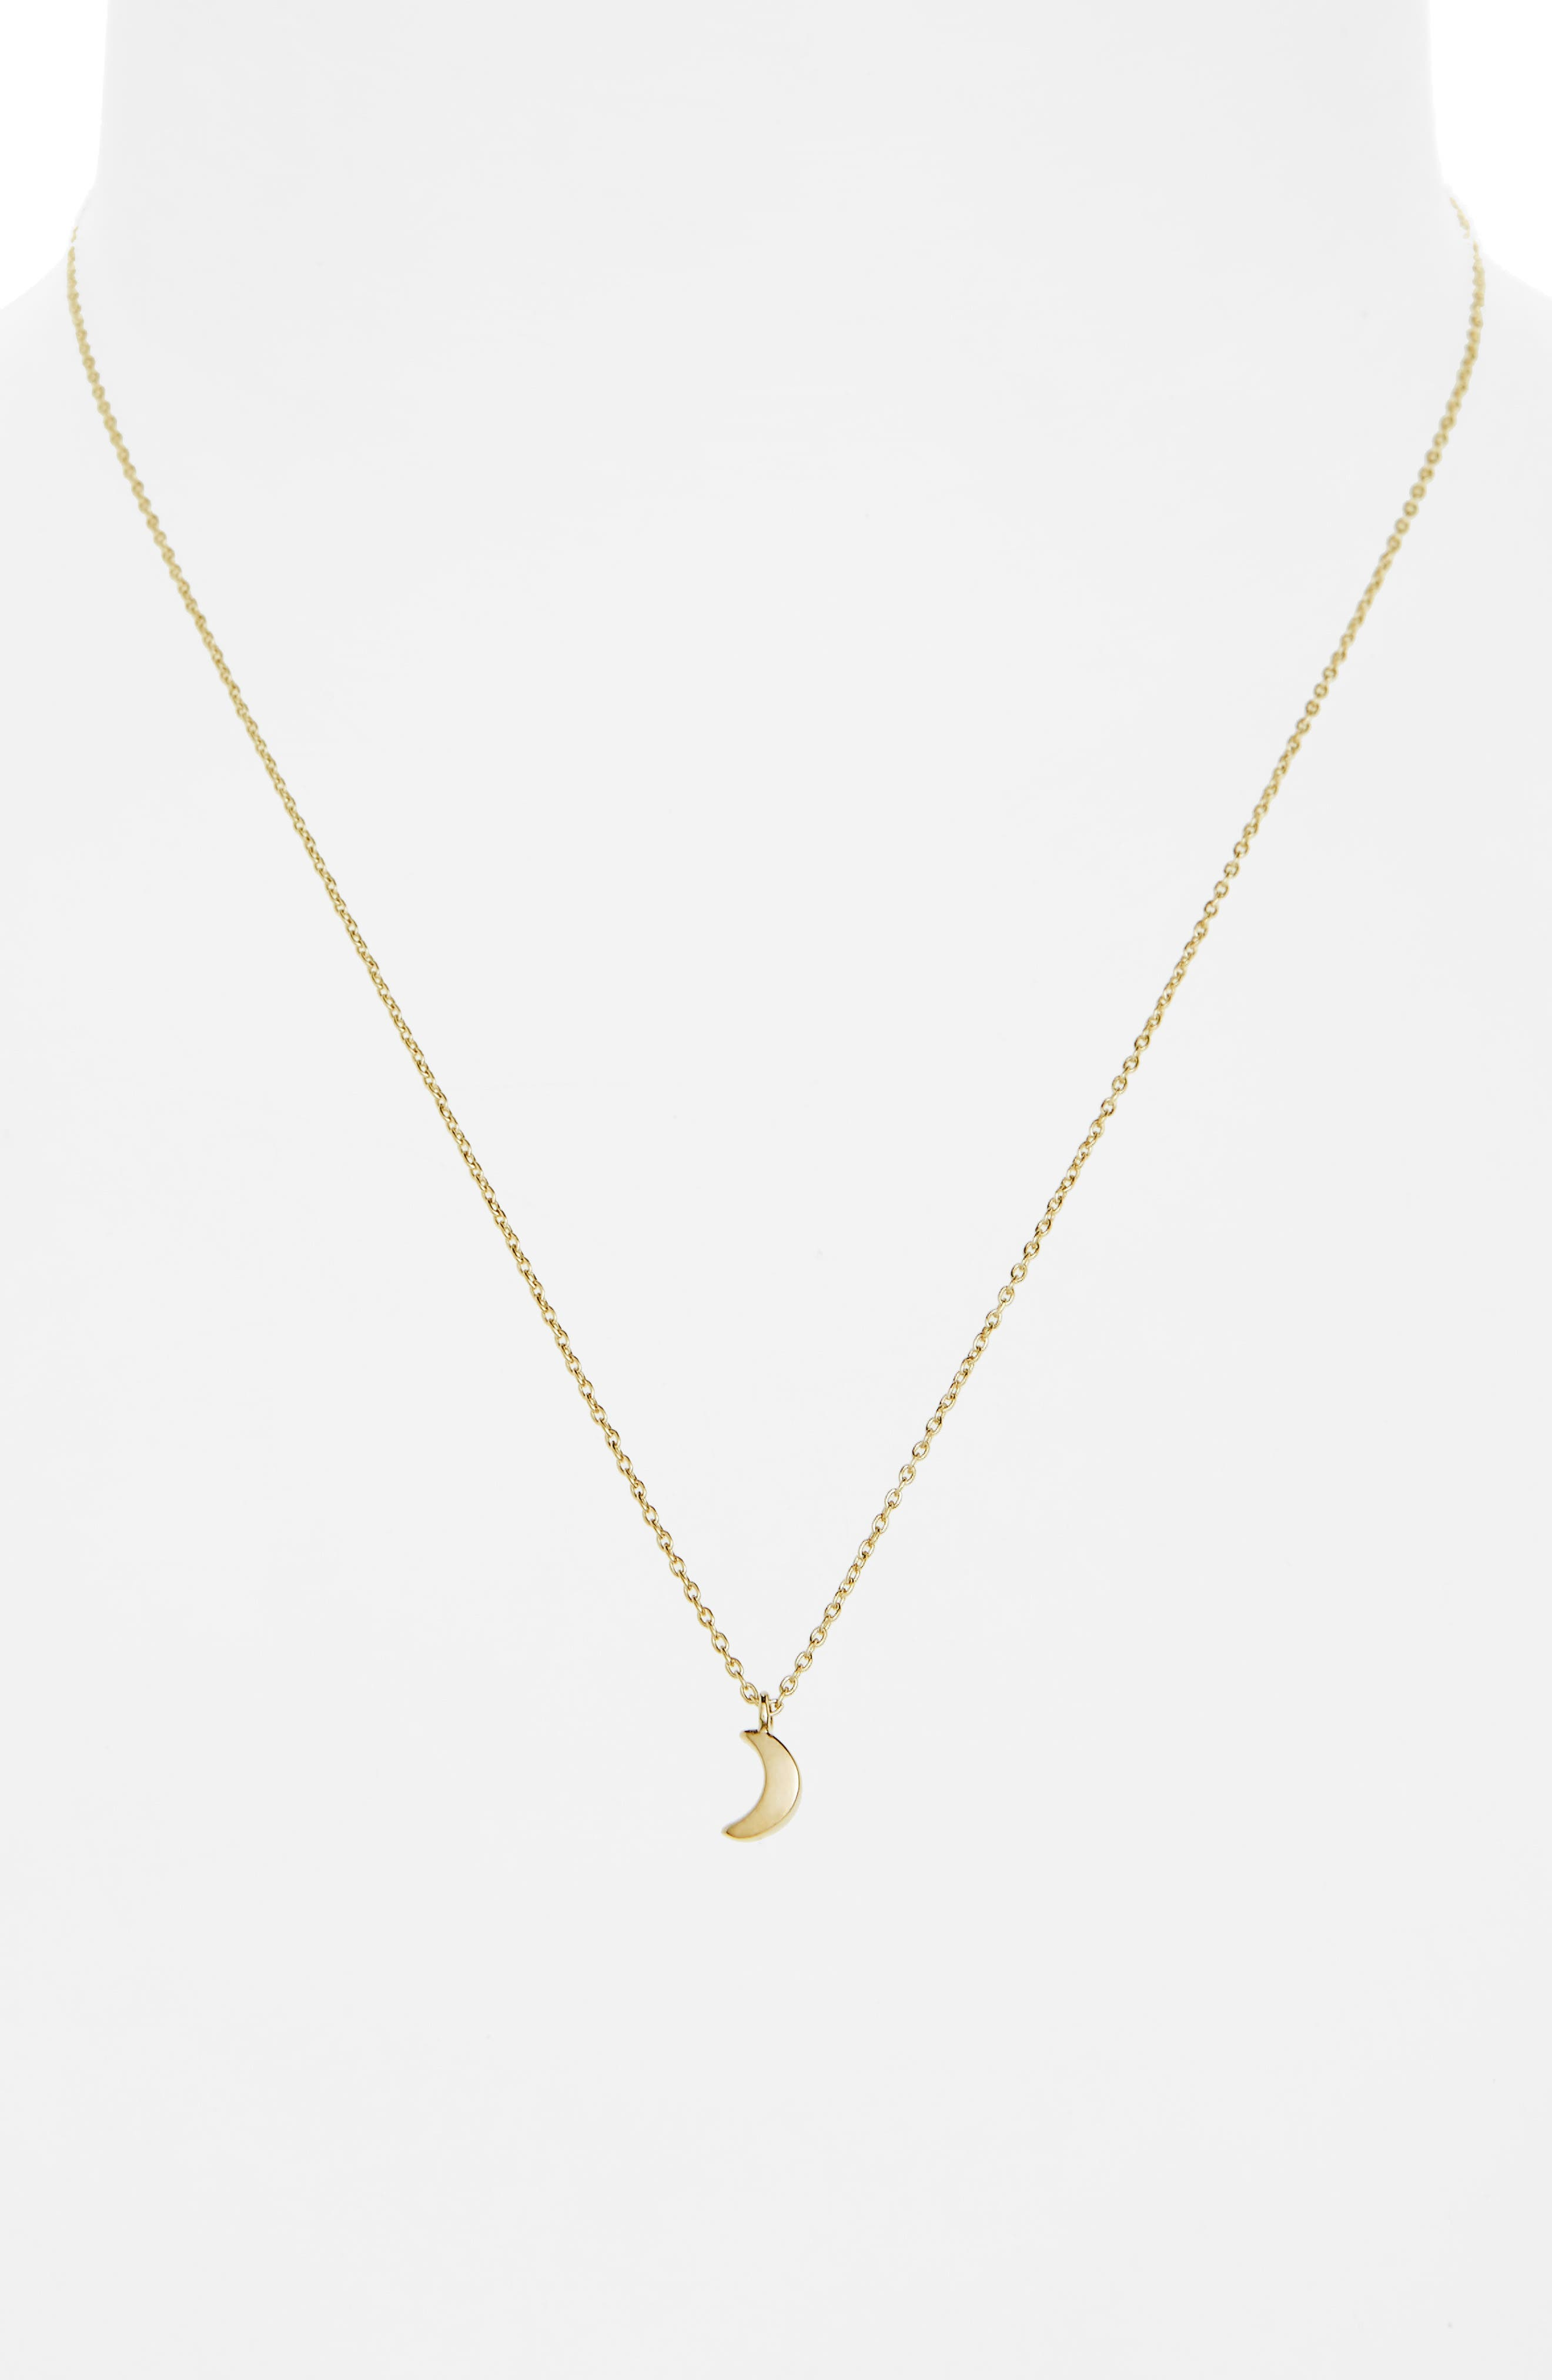 Crescent Moon Charm Necklace,                             Alternate thumbnail 2, color,                             14K Gold